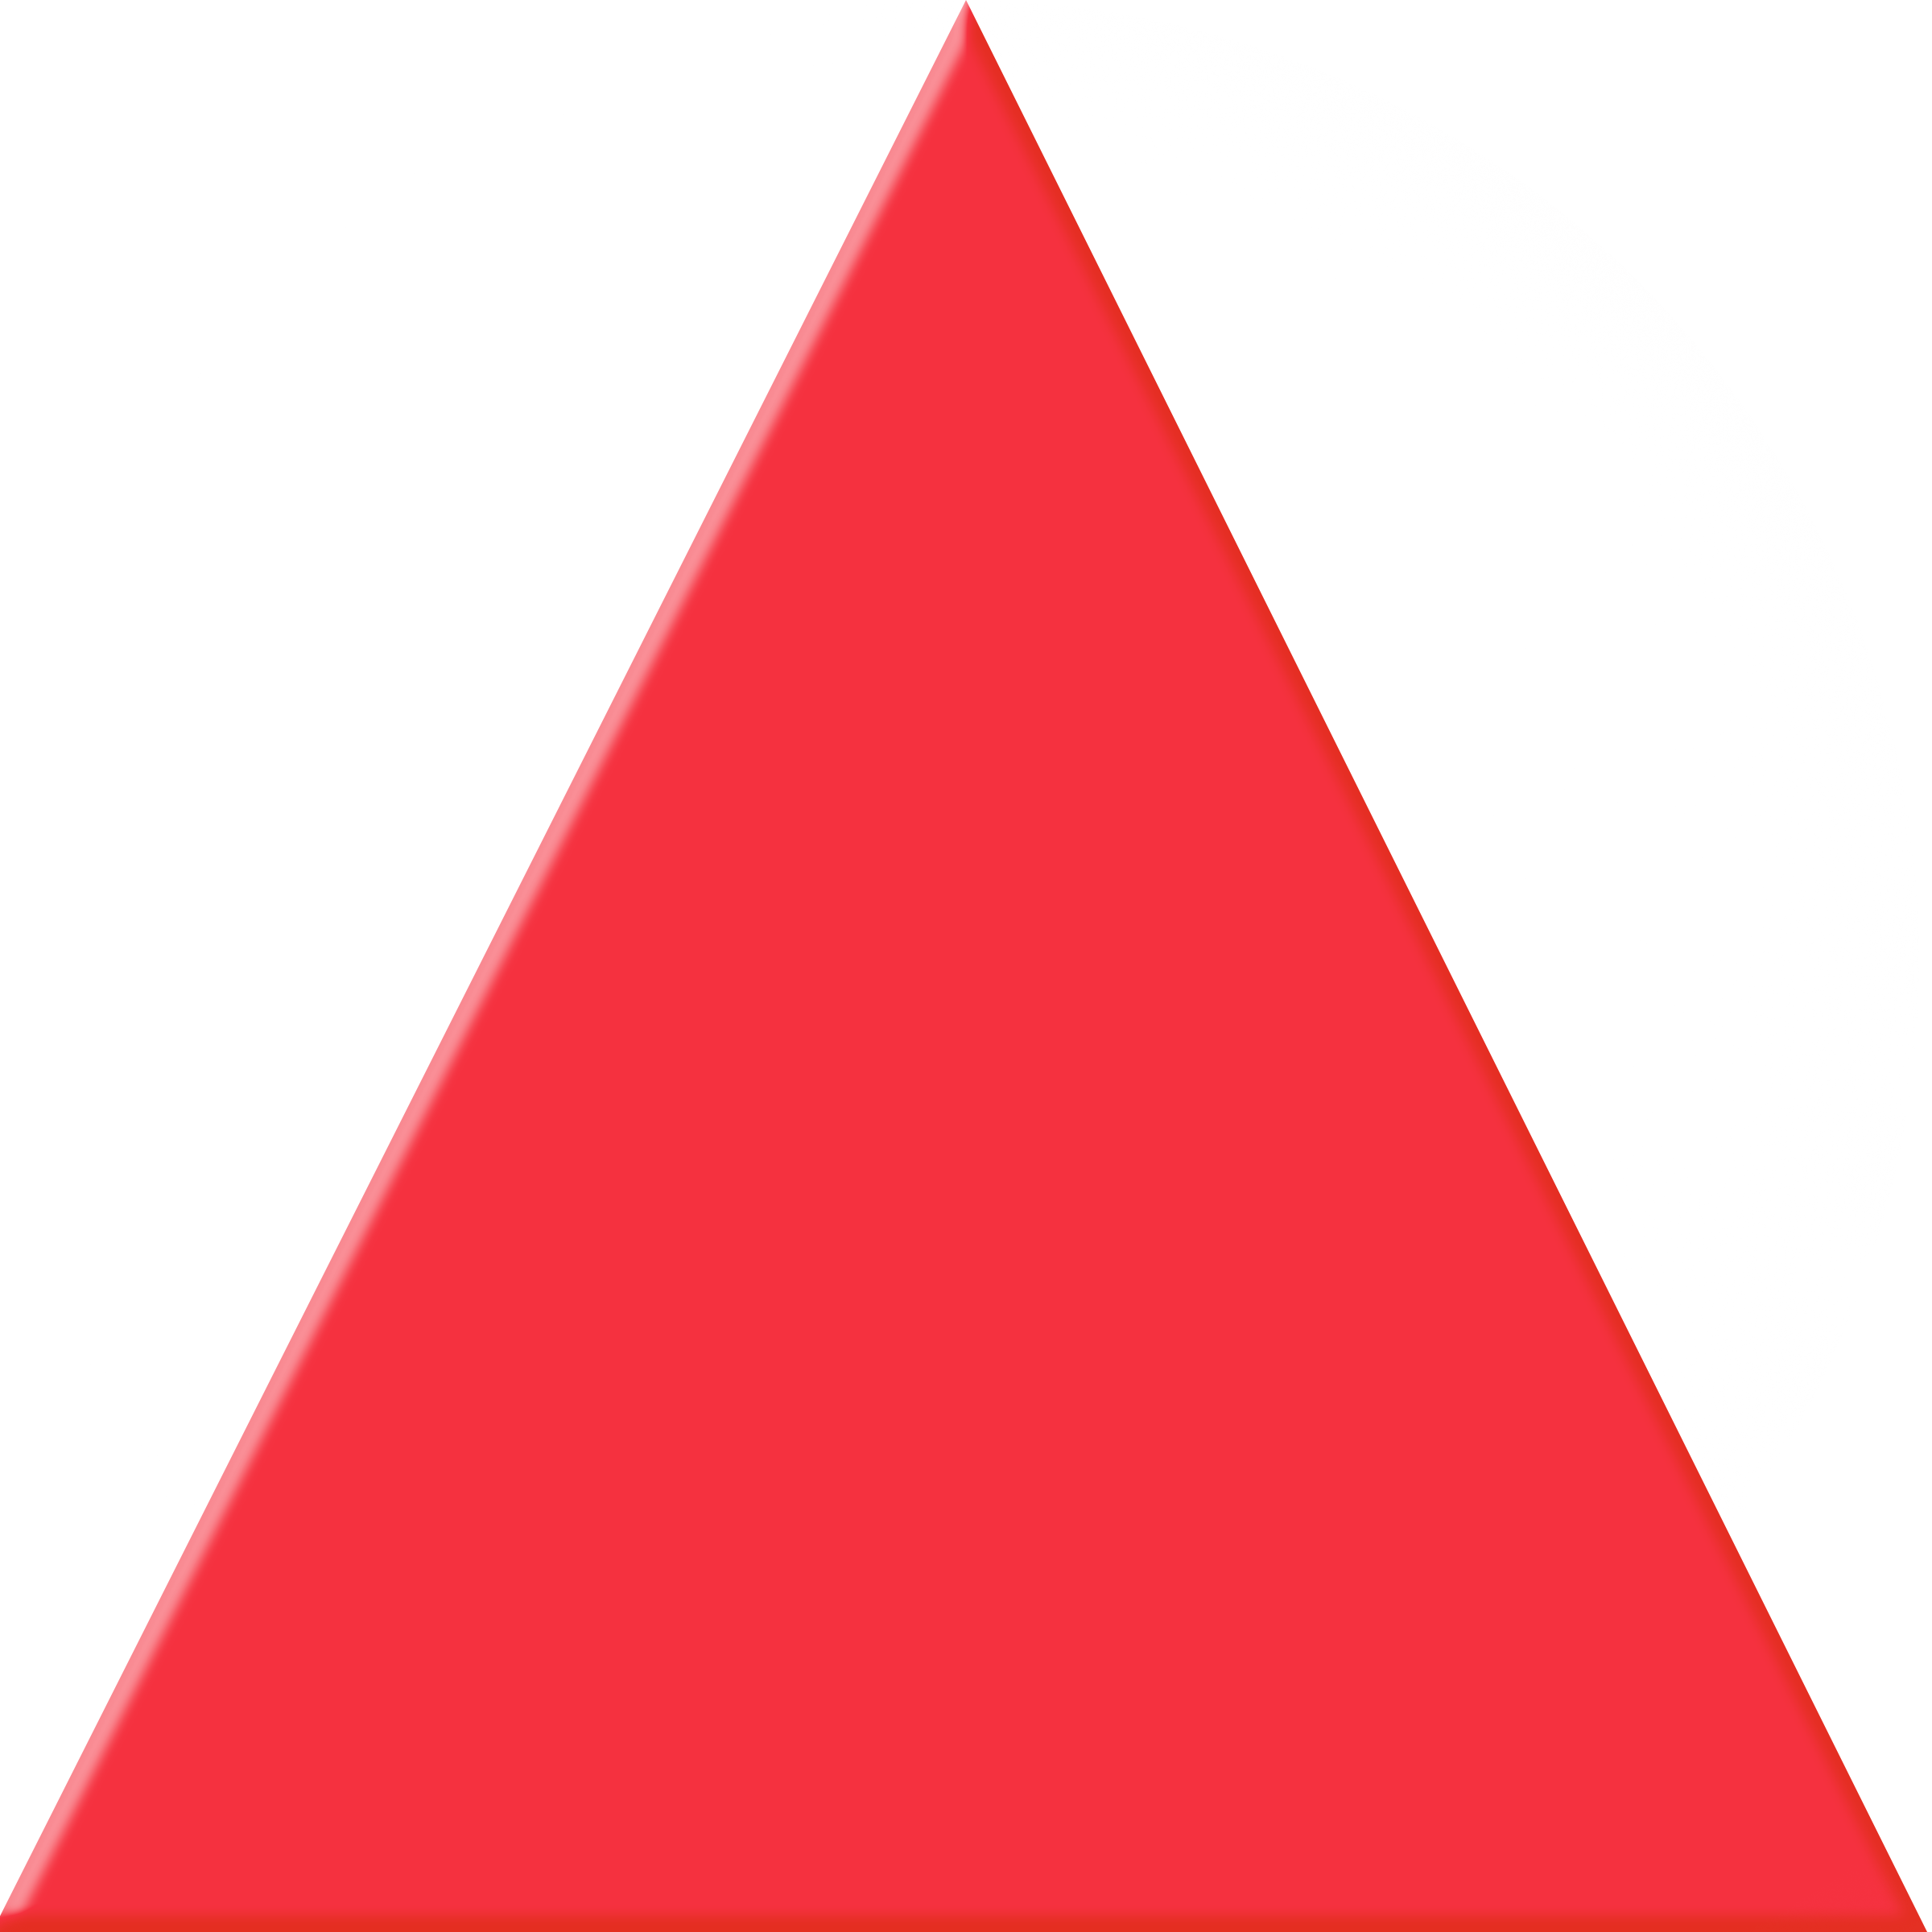 Triangle Transparent Image PNG Image